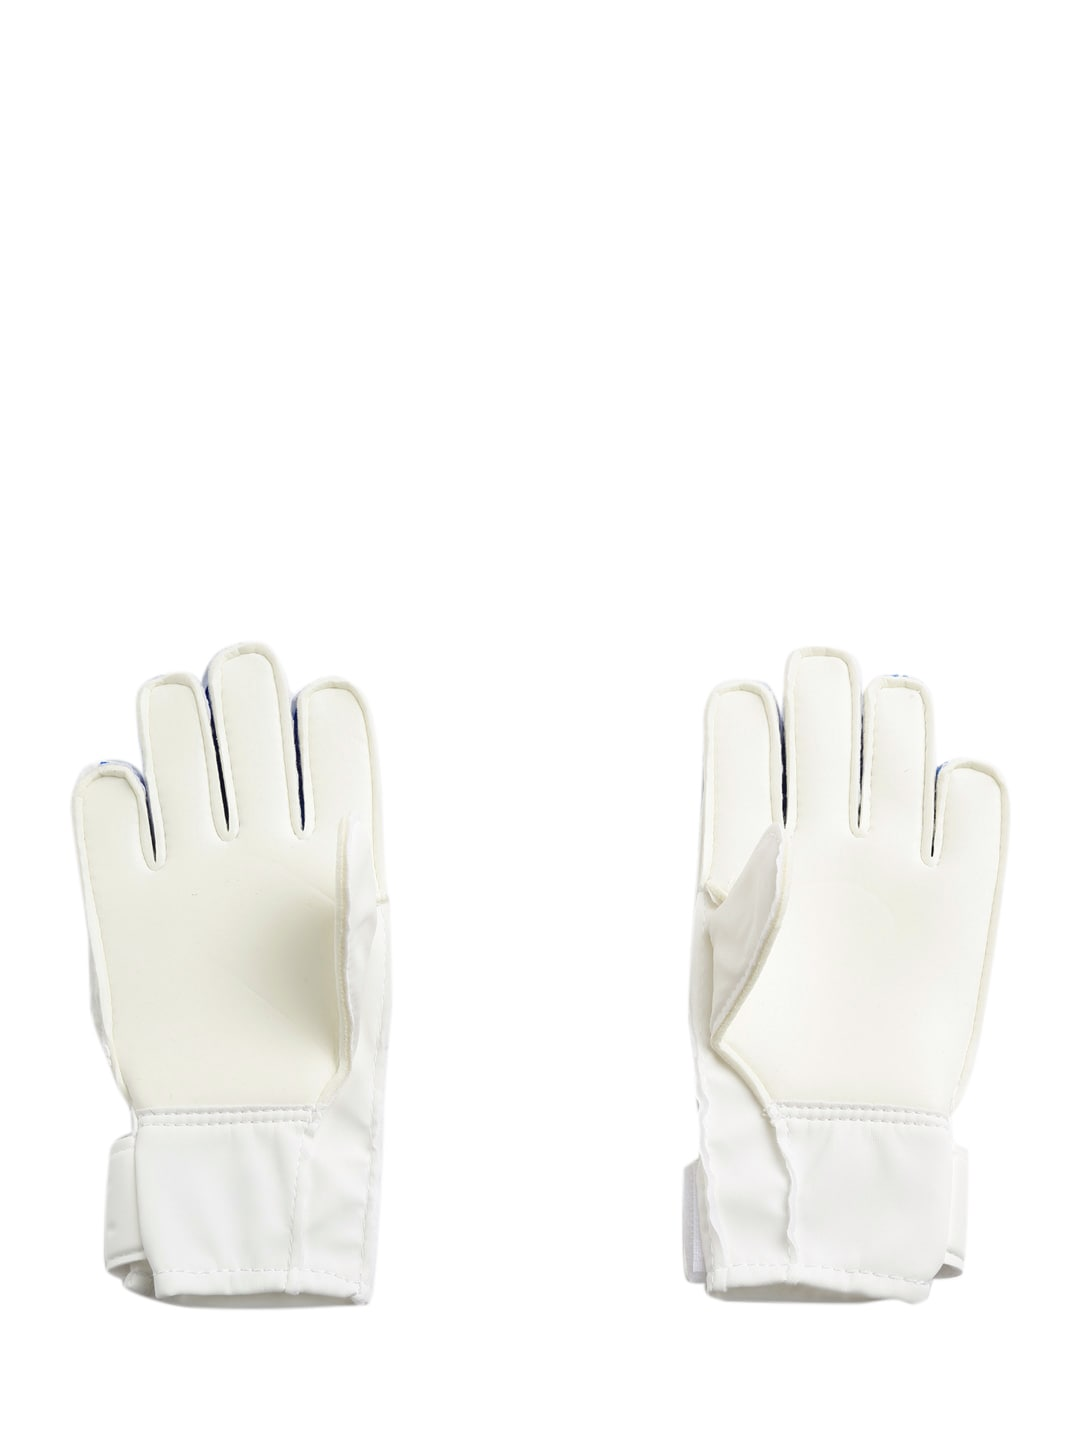 Buy leather hand gloves online india - Buy Leather Hand Gloves Online India 59